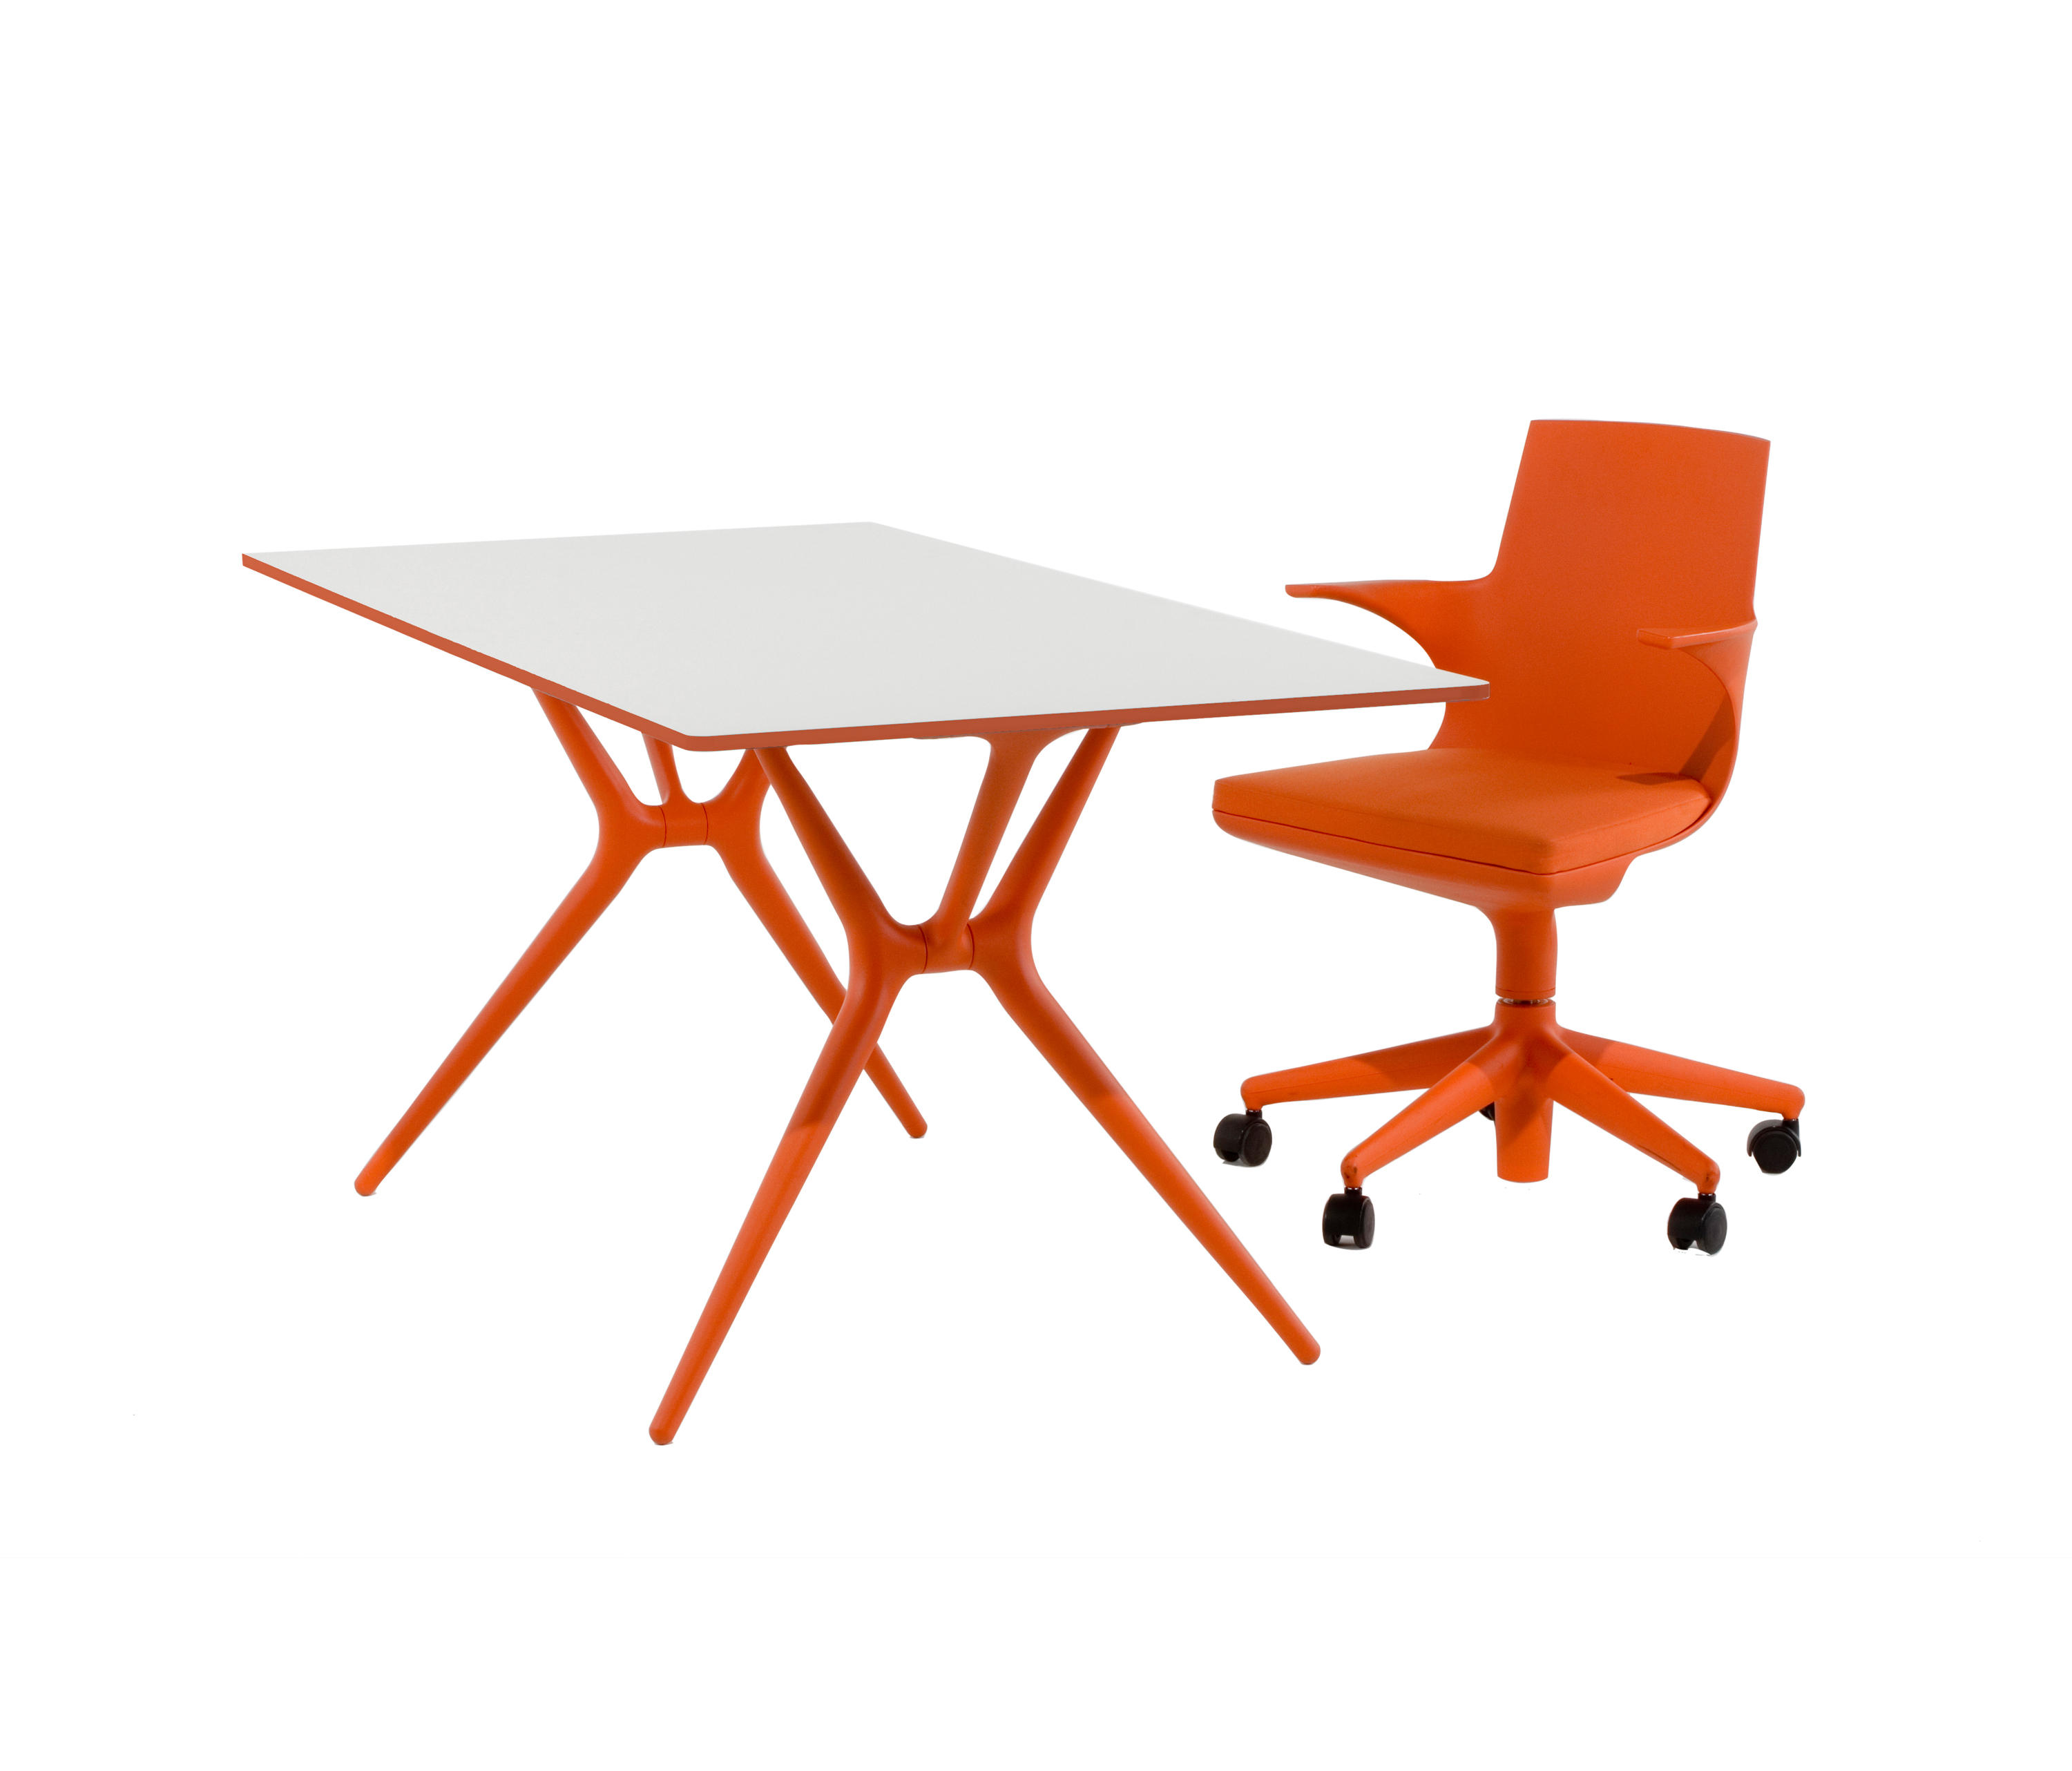 Spoon table individual desks from kartell architonic for Table kartell